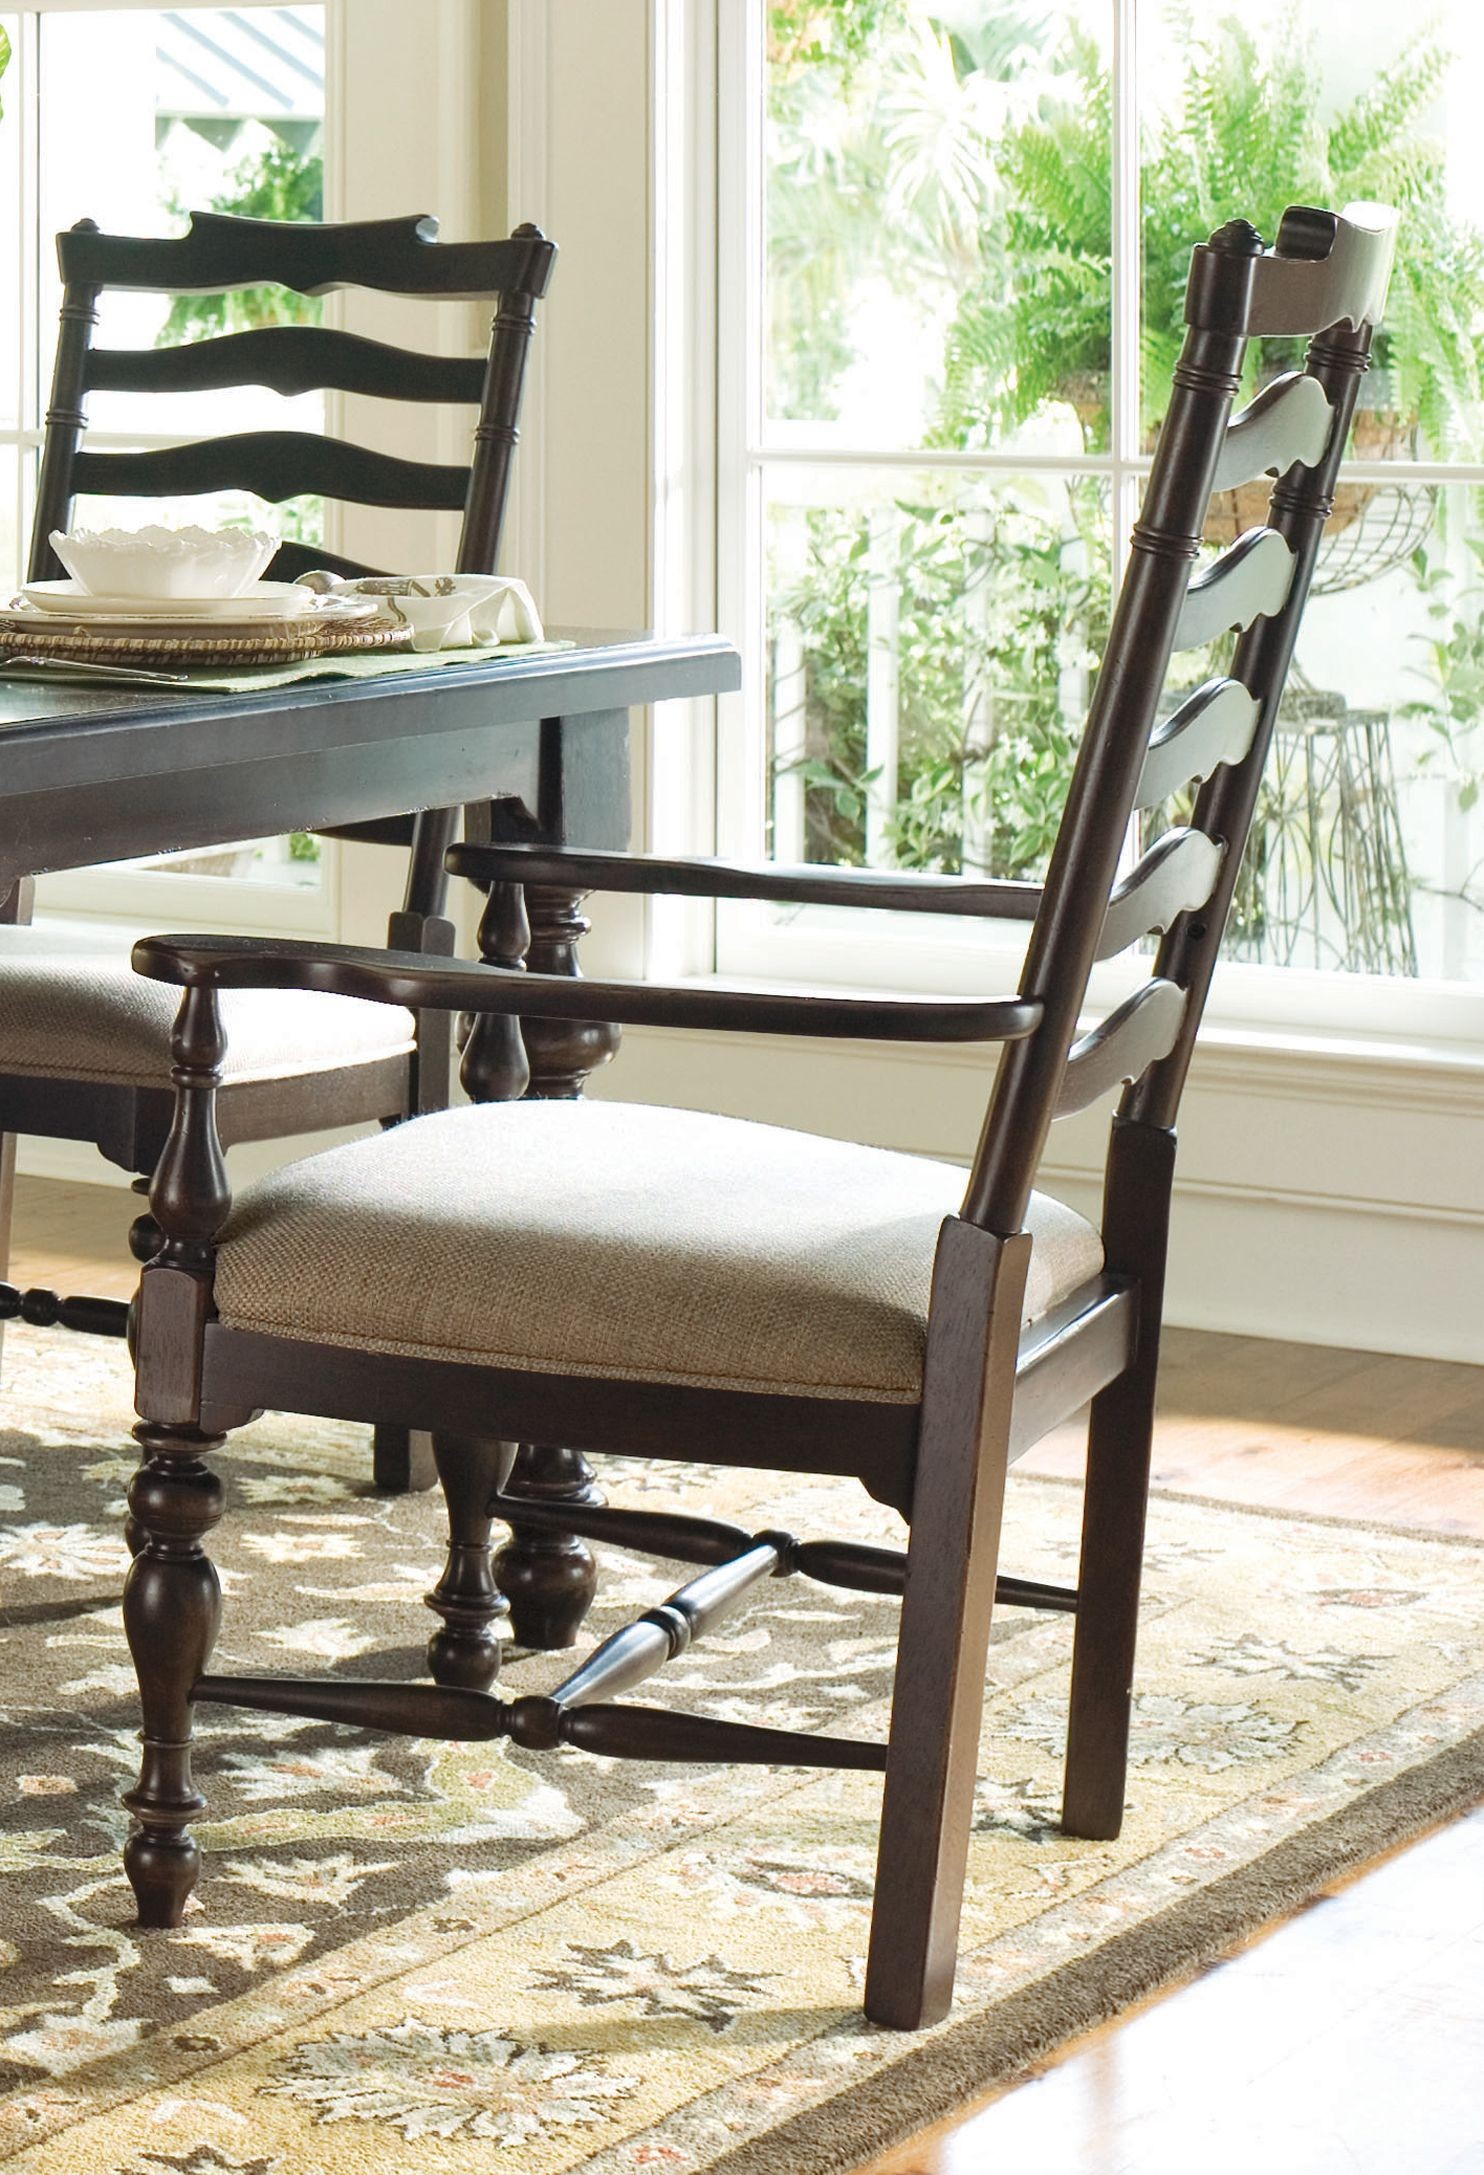 paula deen table and chairs curved chair lift home tobacco rectangular extendable dining room